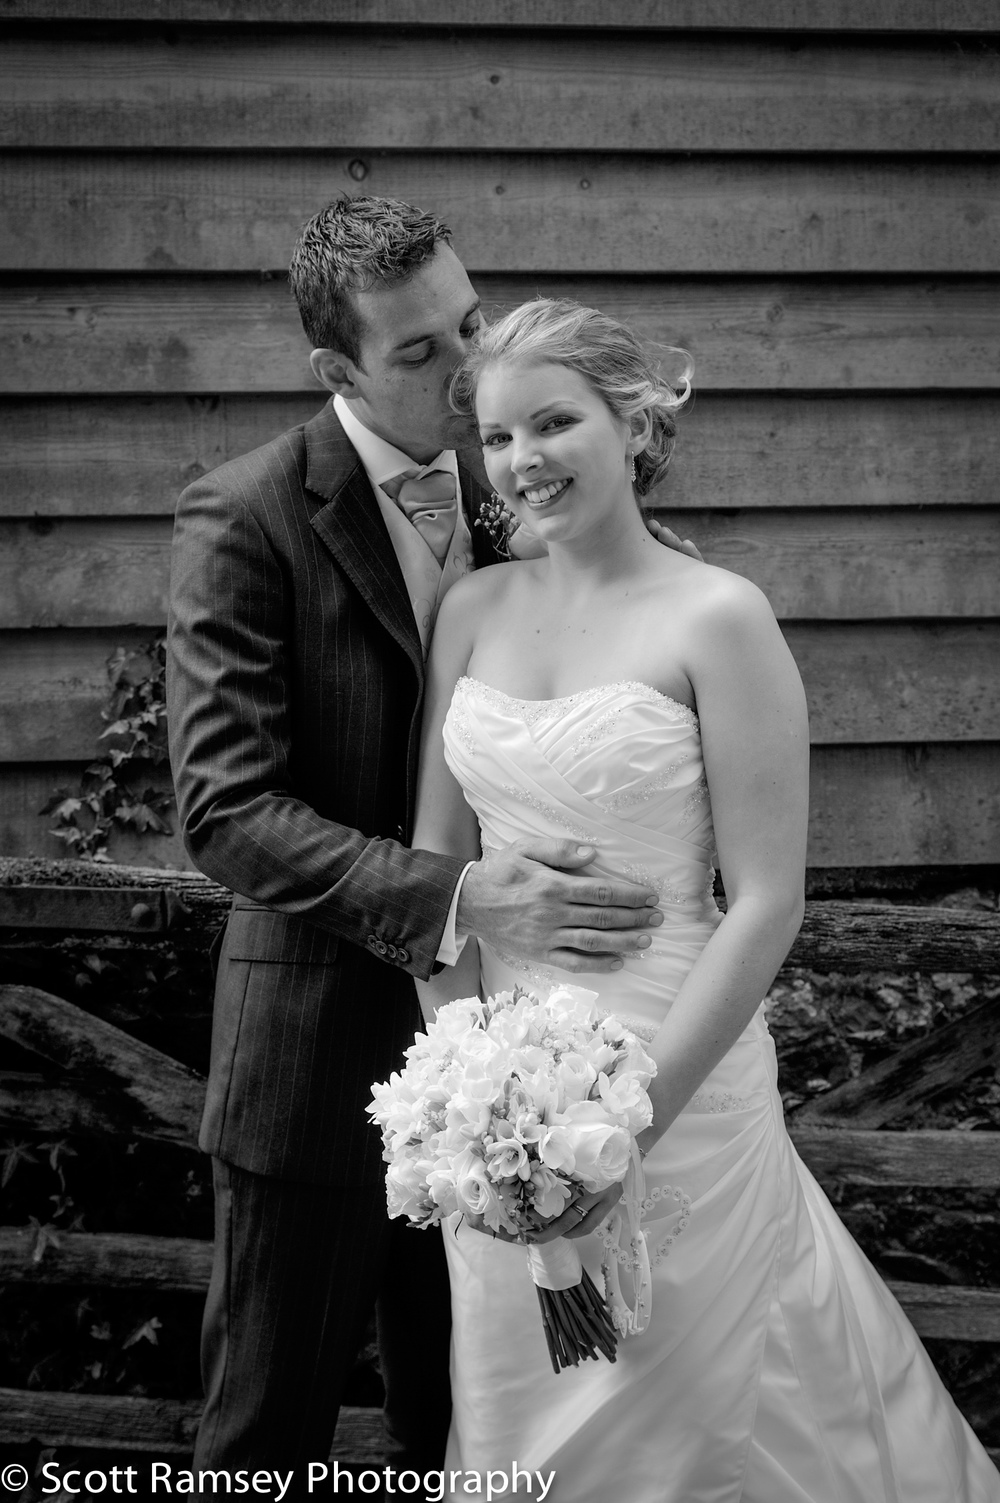 The Groom whispers into the ear of his bride in this very romantic photograph taken during a wedding at Mellow Farm Barn, Farnham in Surrey.